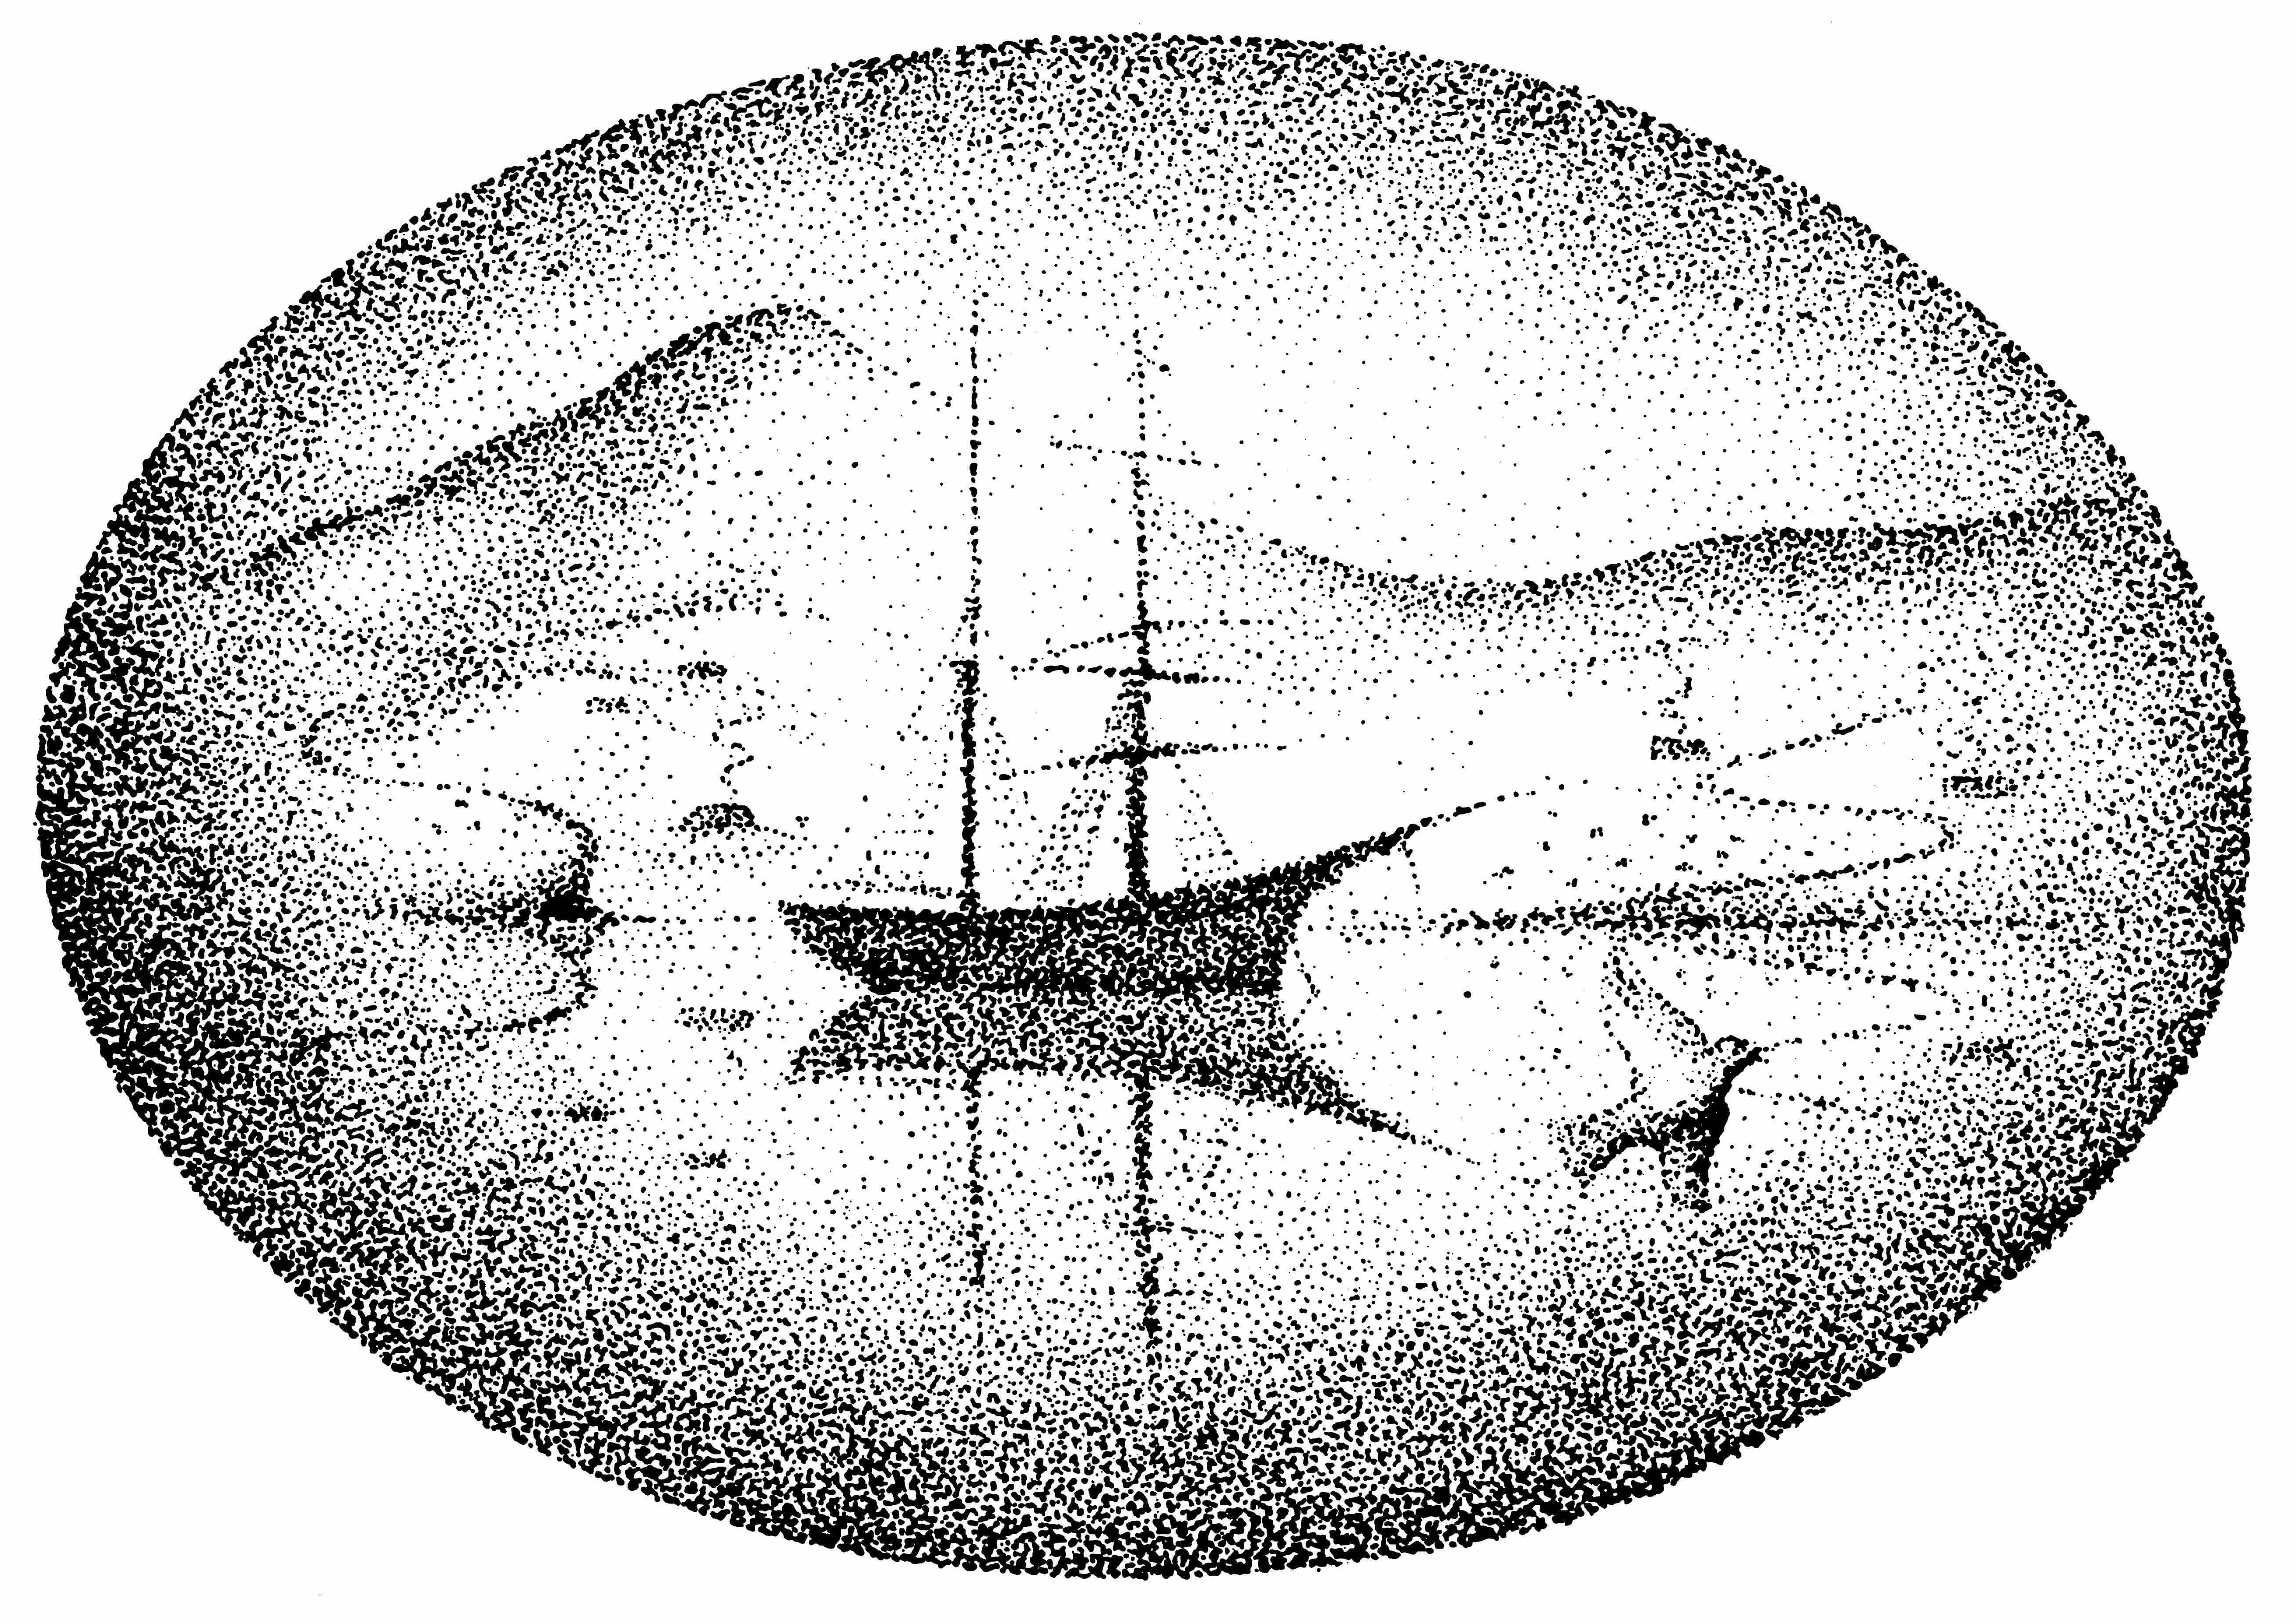 Orkneyology.com - Orkney illustration used by kind permission of Stromness artist, Bryce Wilson. Copyright Bryce Wilson